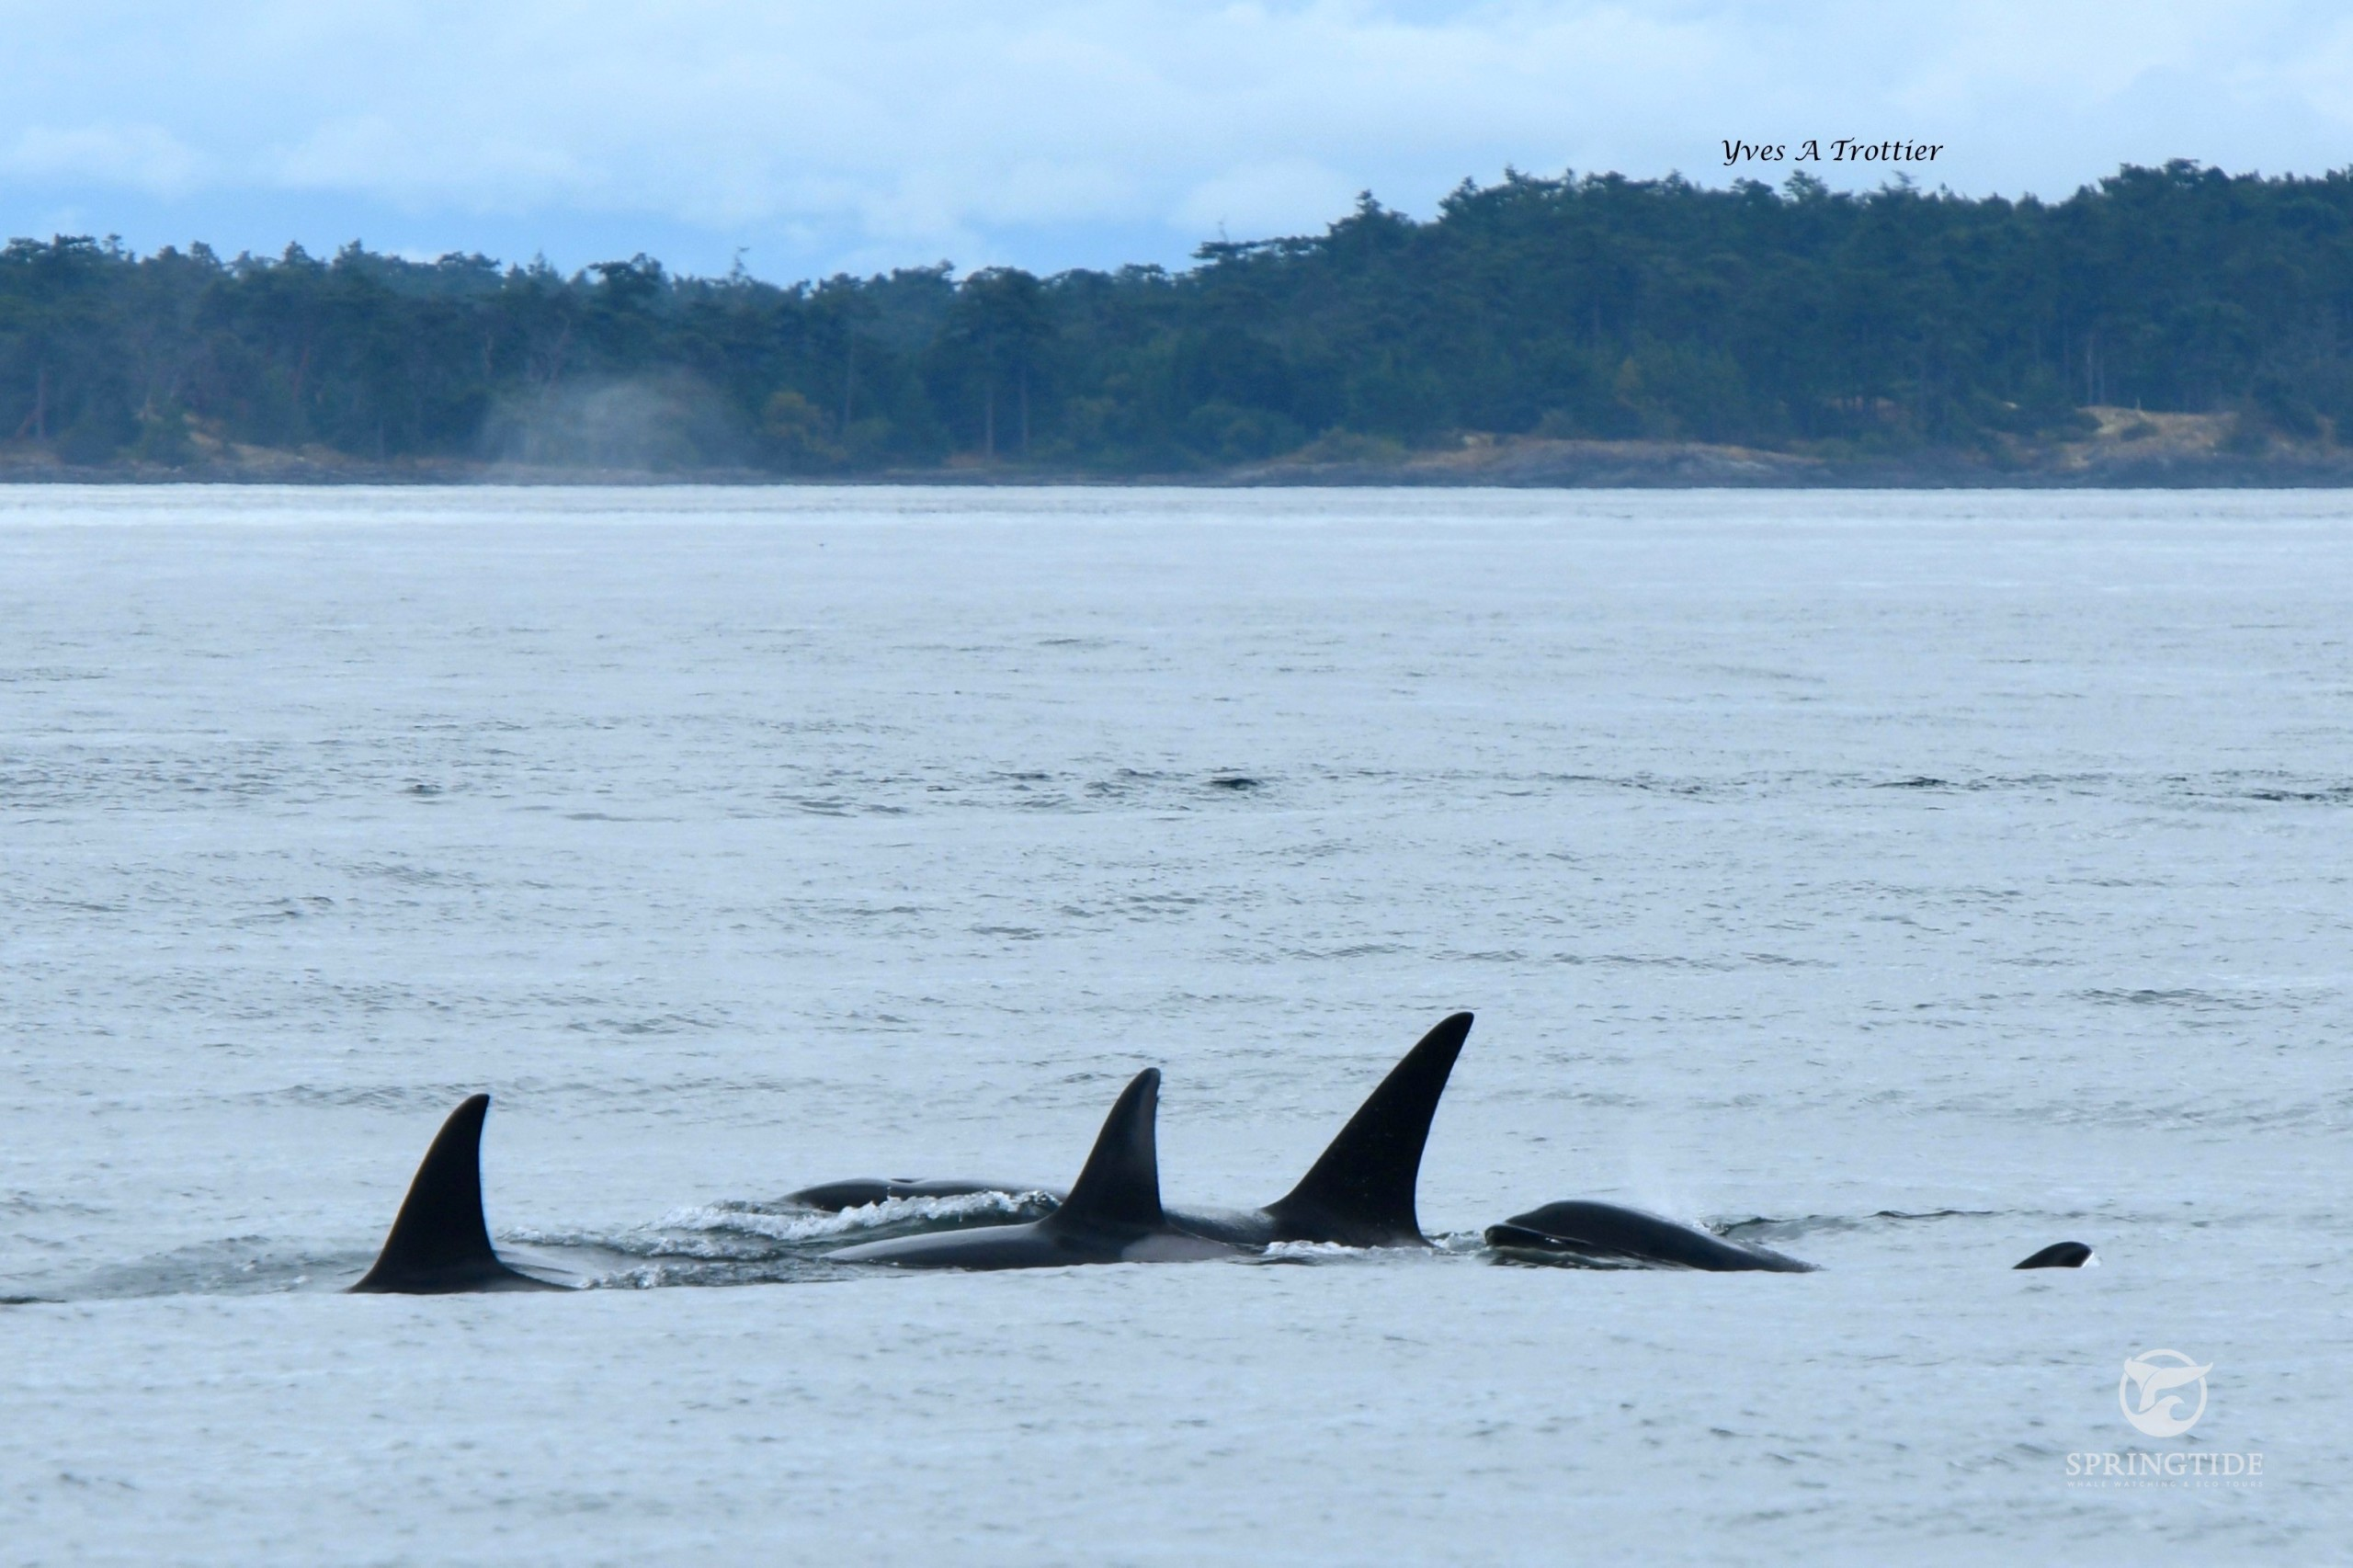 T60, killer whales swimming together